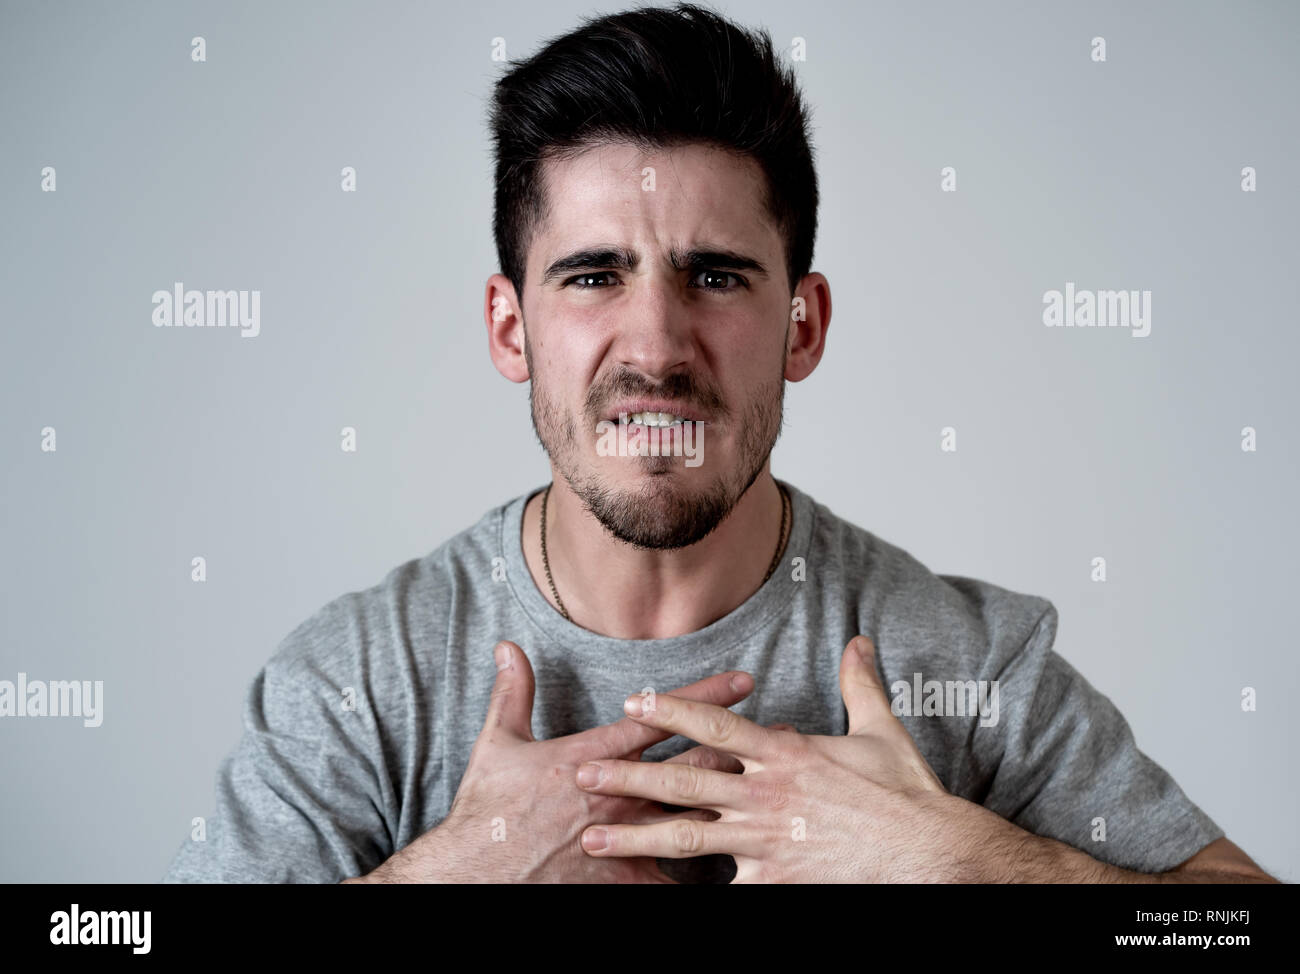 Close up portrait of young man with angry face feeling anger and looking upset at the camera. Human facial expressions, negative emotions and behavior Stock Photo